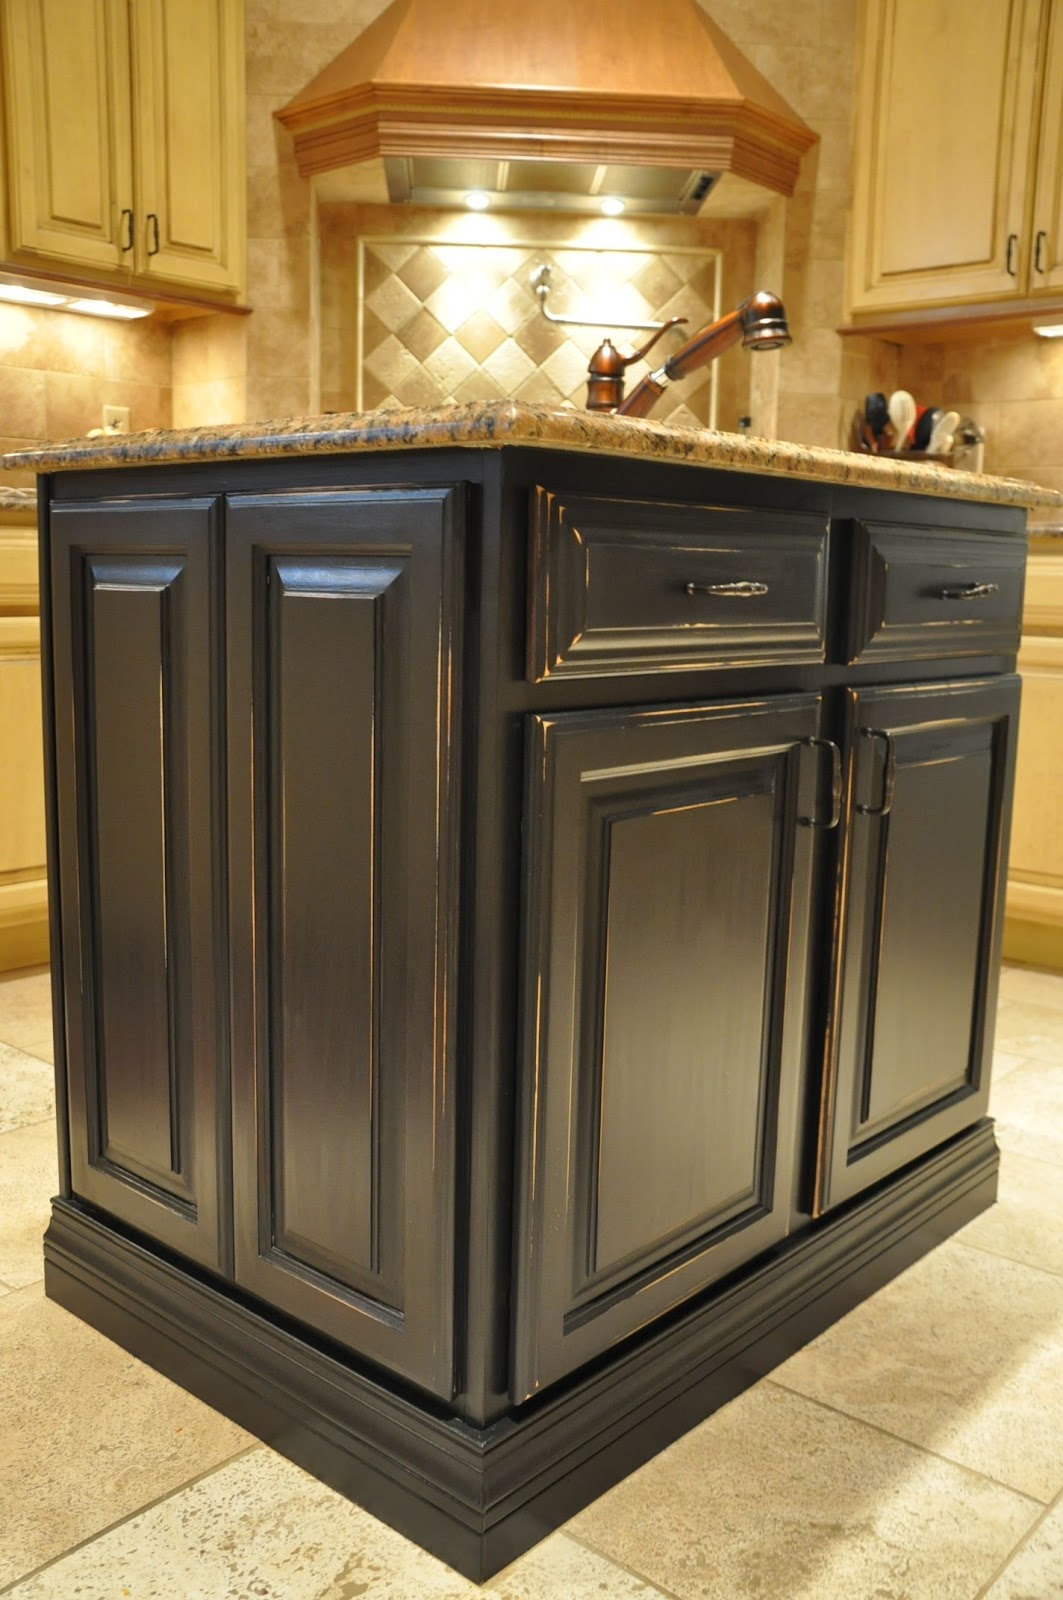 Painted Kitchen Islands Low Cost Sinks Island Reveal Evolution Of Style